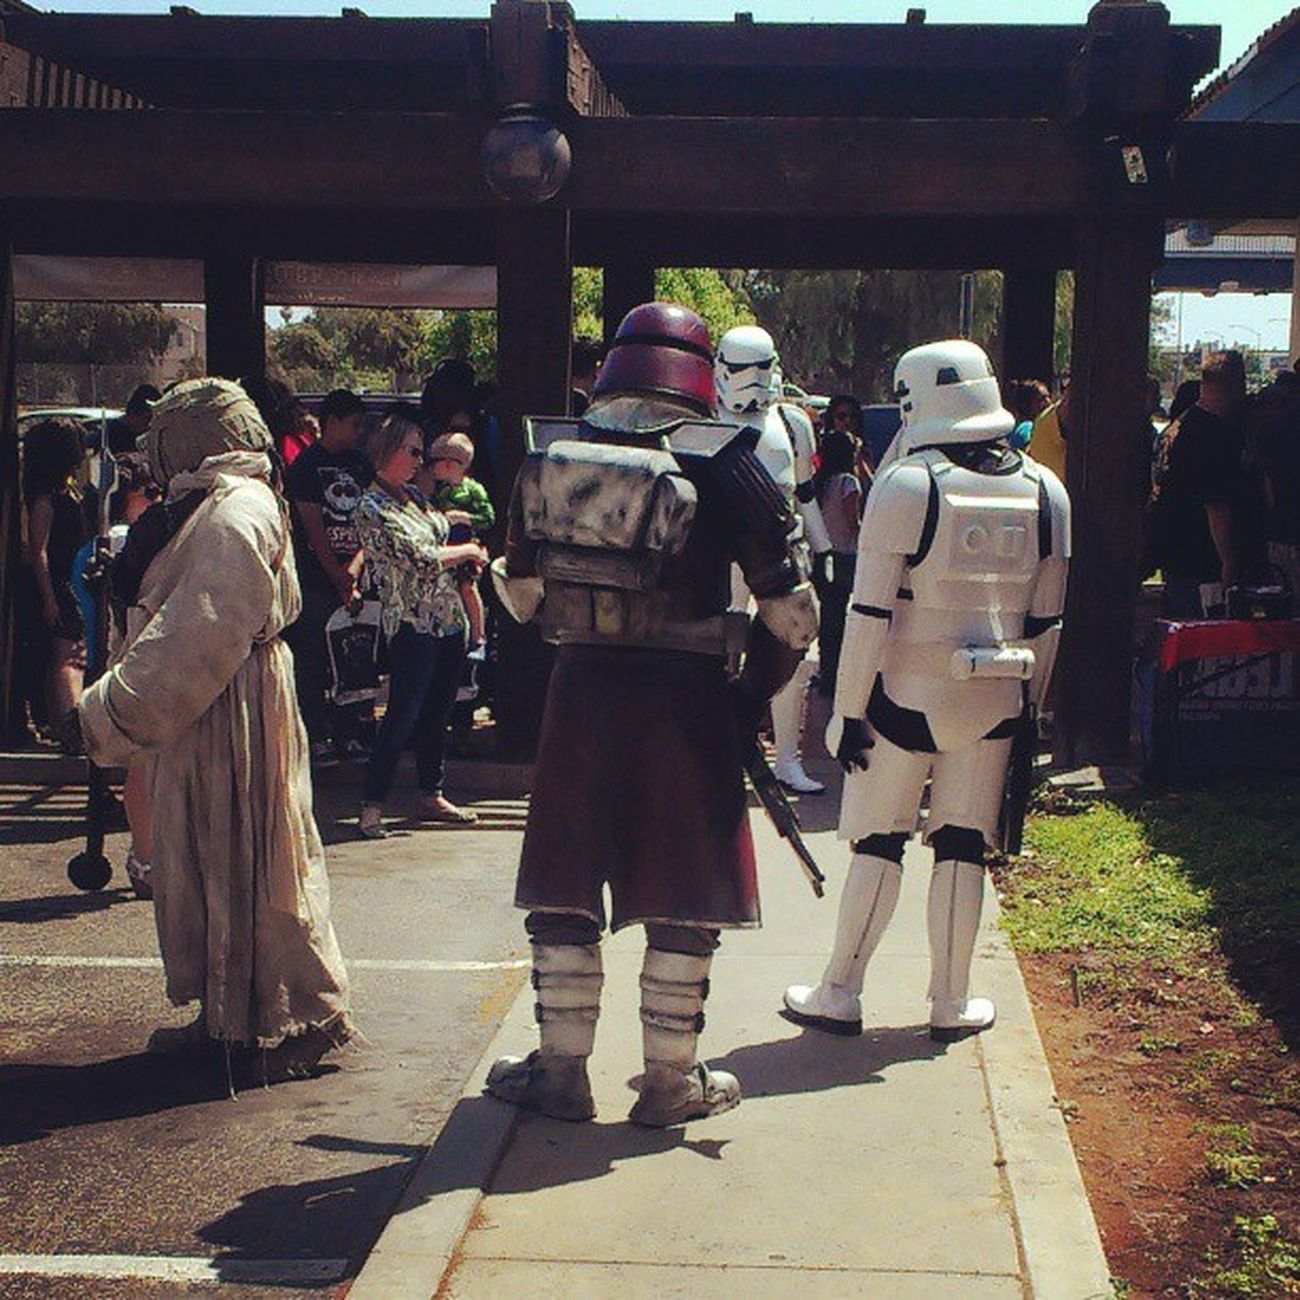 What happens when #maythe4th and #freecomicbookday lands on the same day? This happens! #heroscomics #Fresno Fun Stormtroopers Fresno  MayThe4thBeWithYou Maythe4th Freecomicbookday Heroscomics Theforce Theforceisstrongwiththisone Angelgetaways